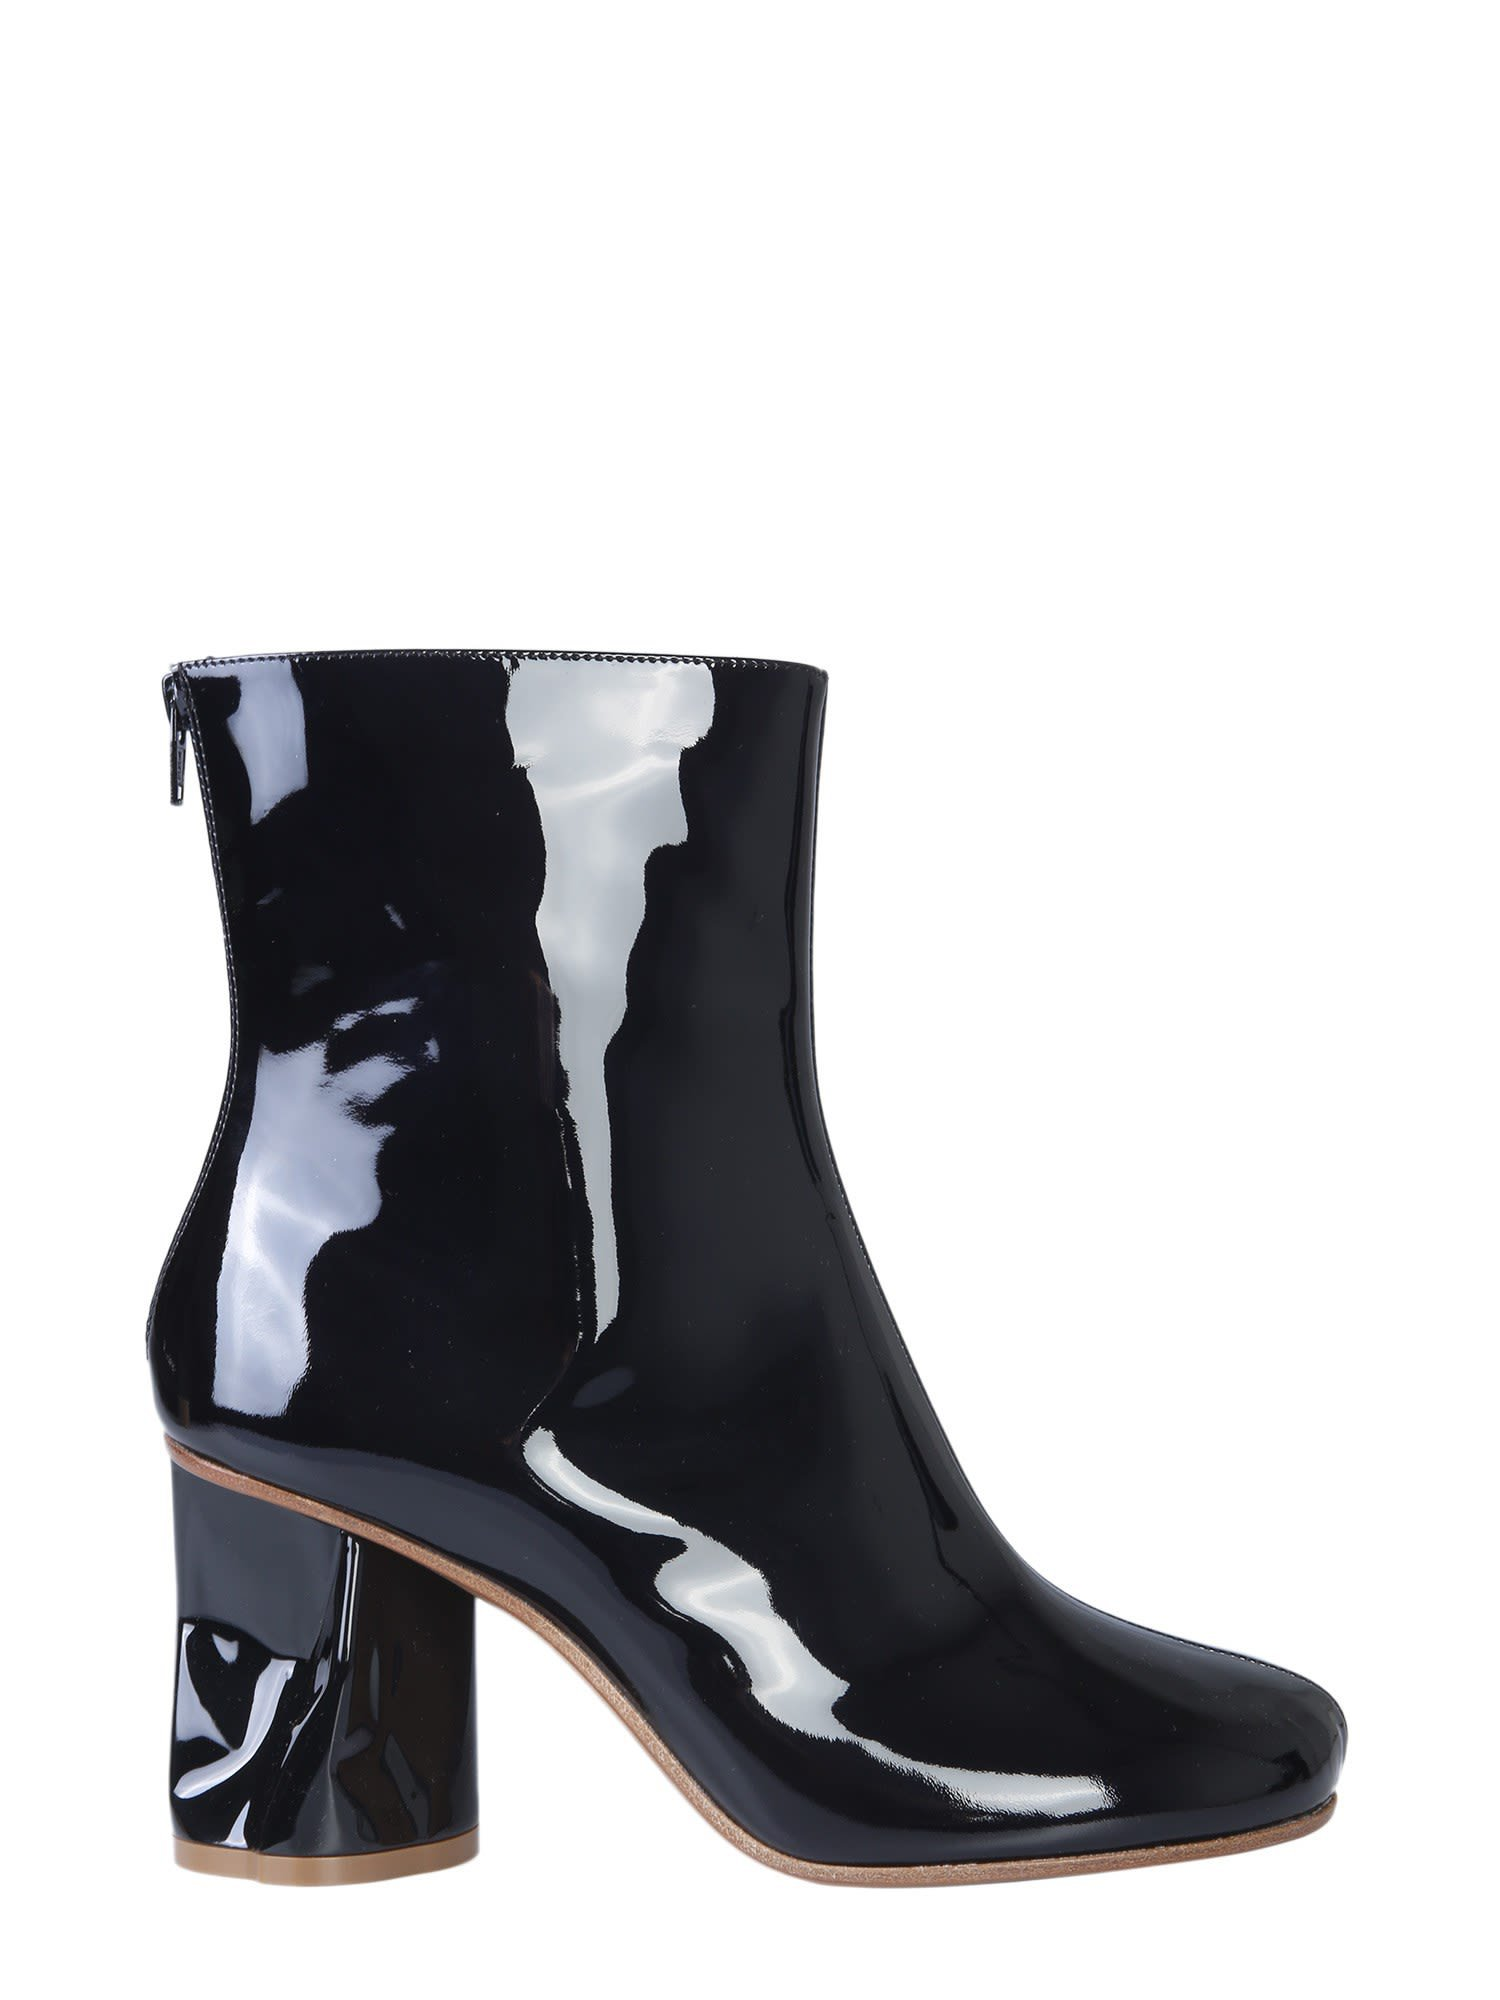 Maison Margiela Ankle Boots With Crushed Heel